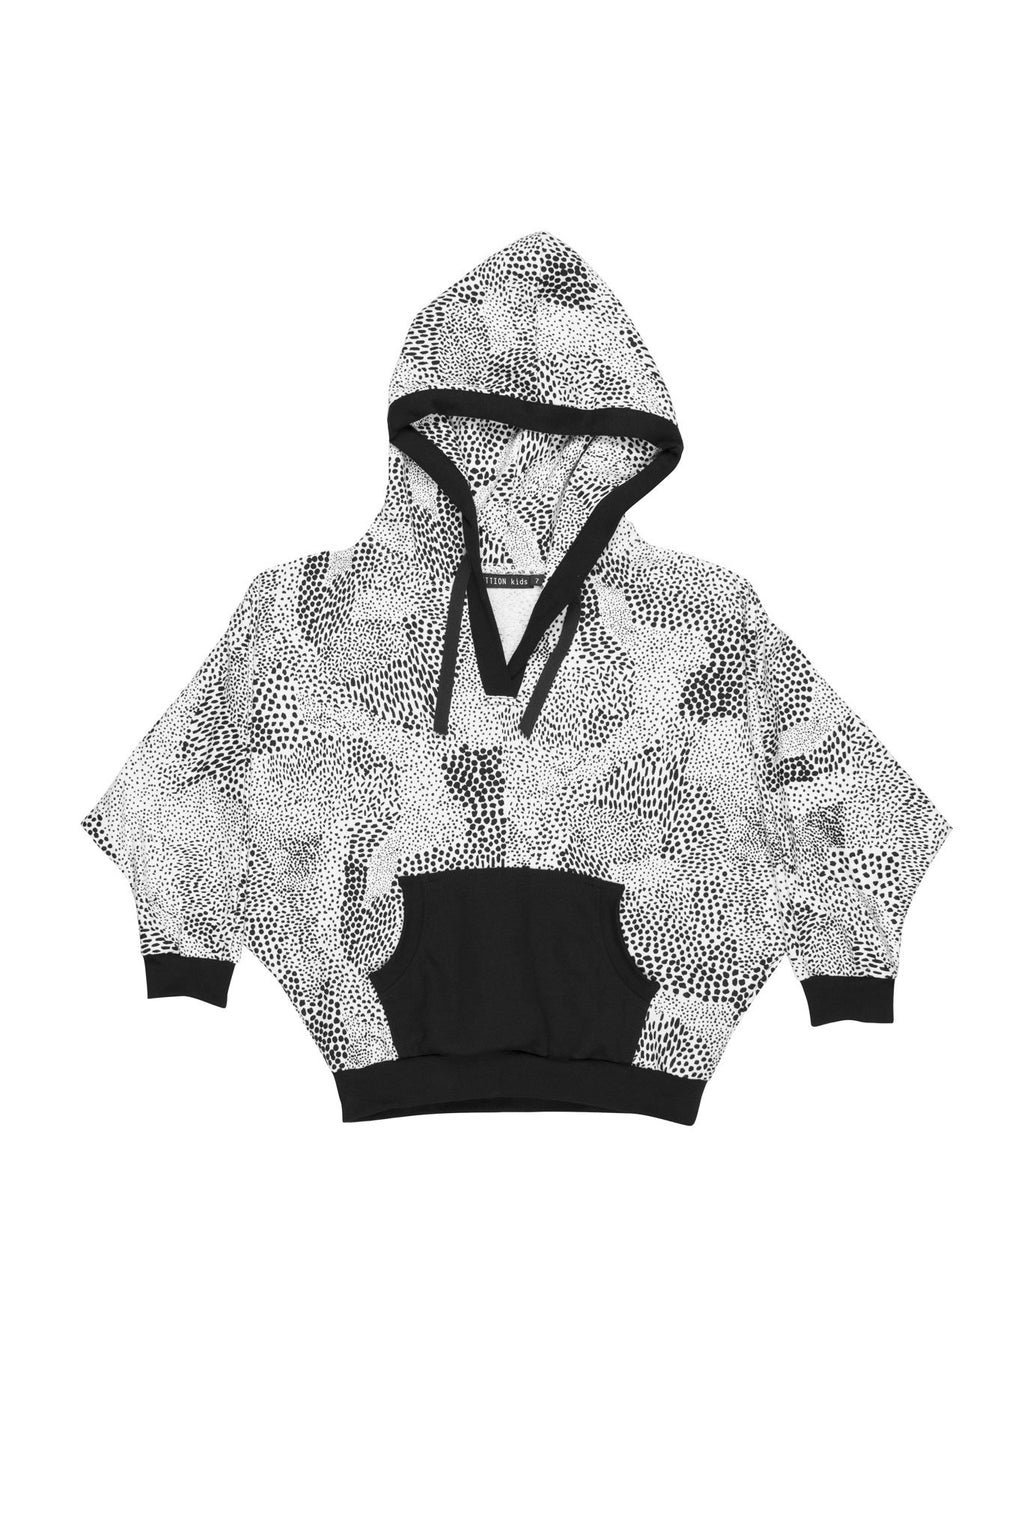 Bat Wing Abstract Sweater Hoodie - Zuttion